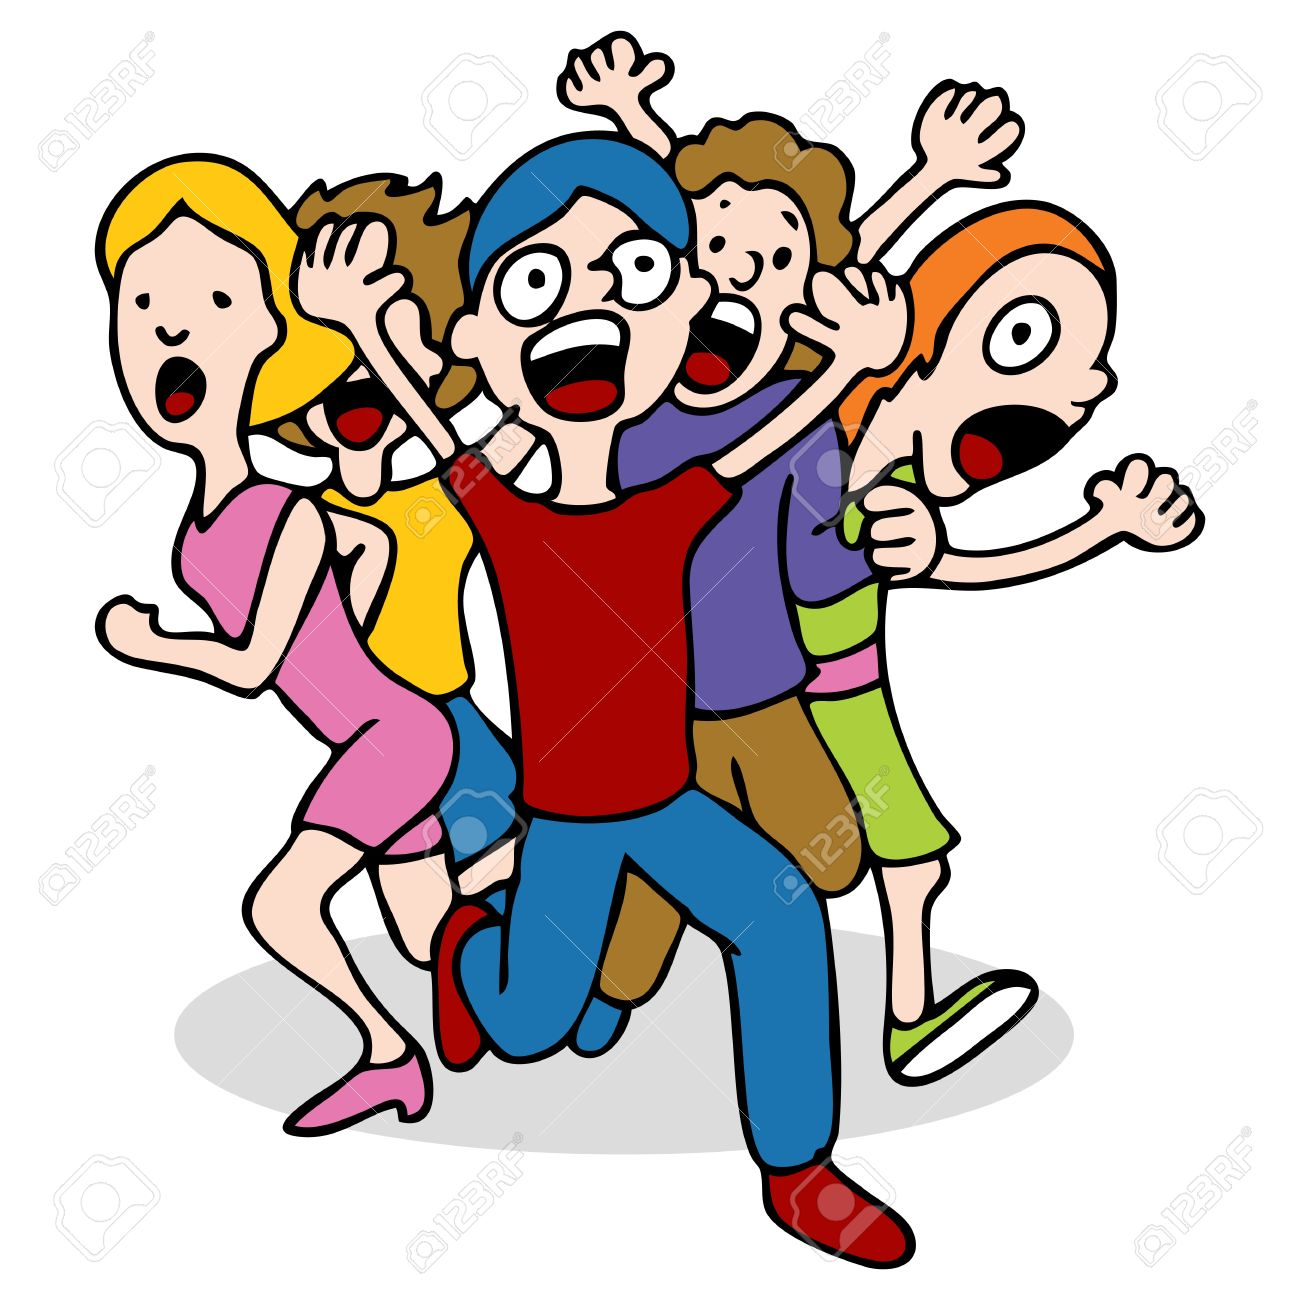 Screaming clipart Clipart People Screaming Download Screaming